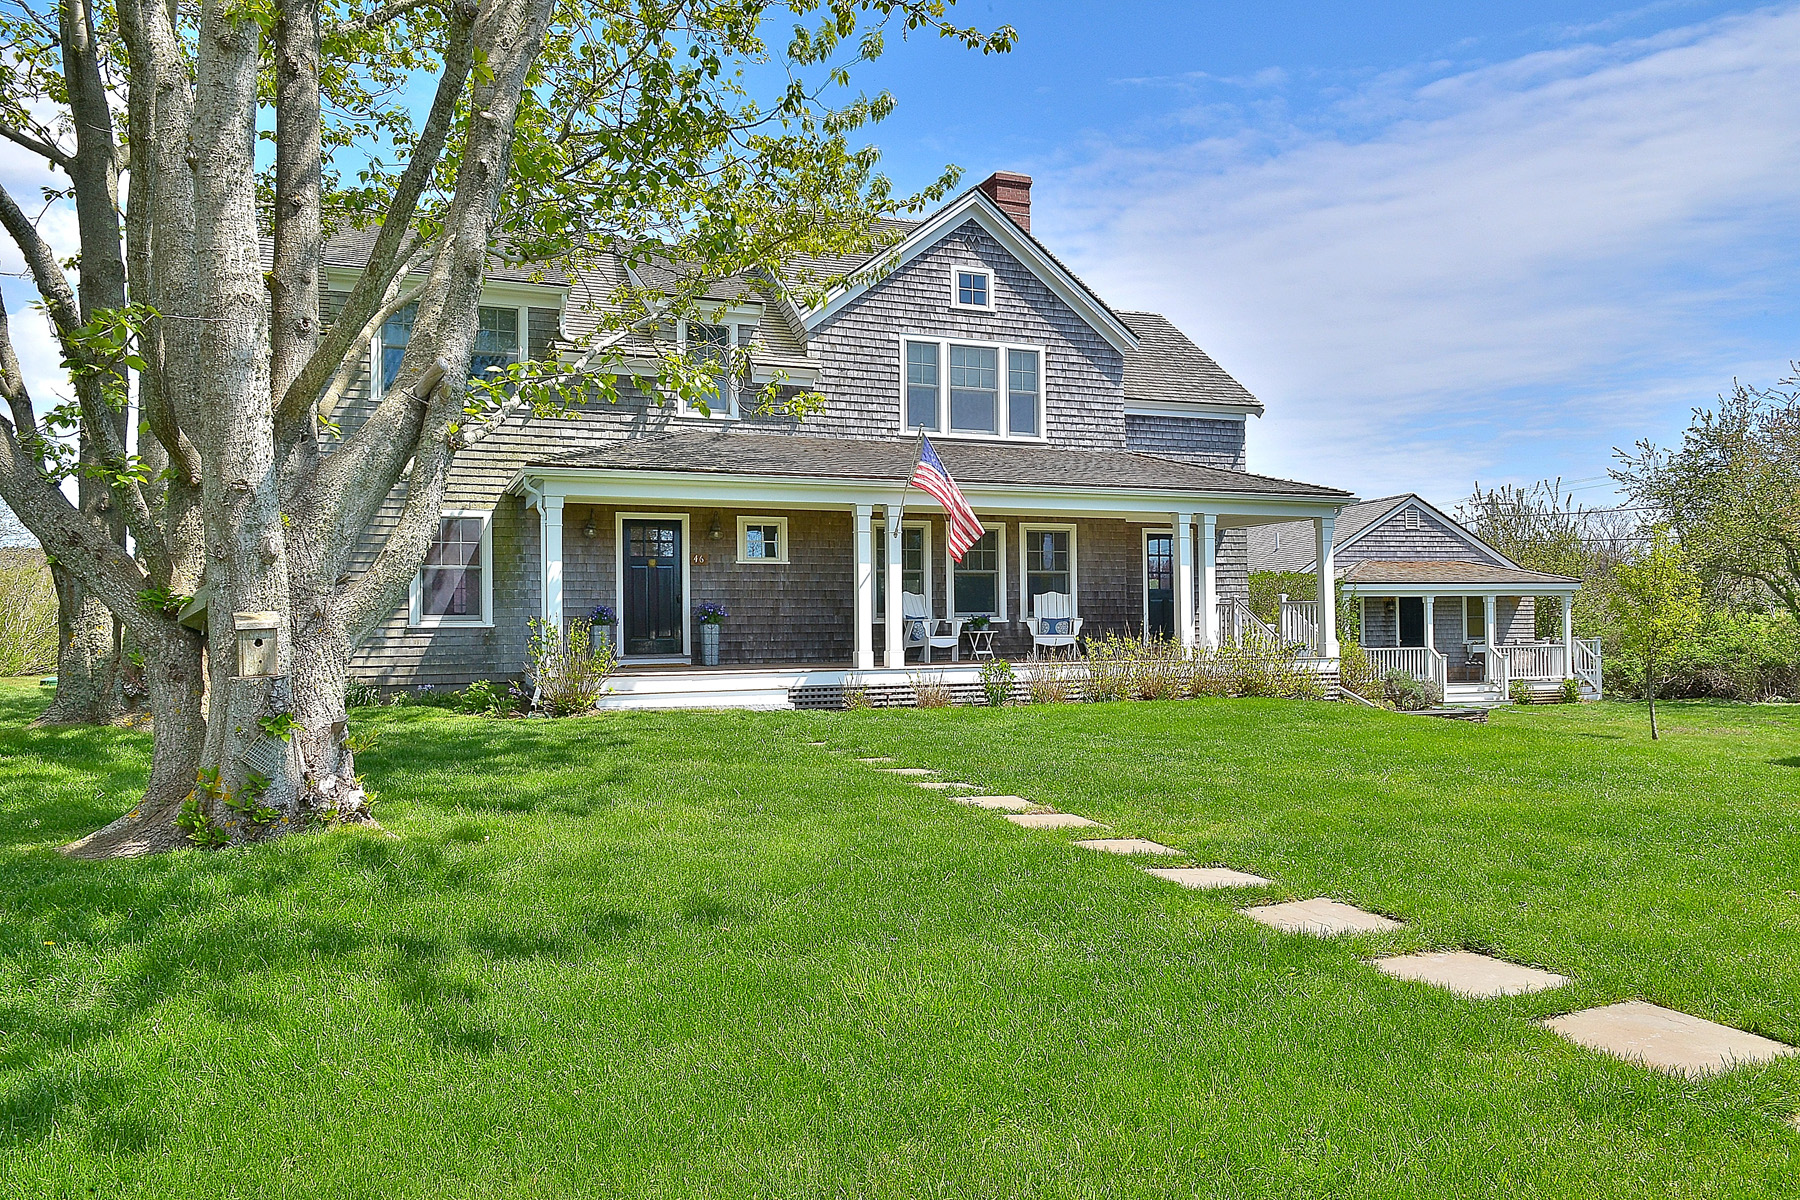 Single Family Home for Sale at Beautiful Farm House Style Home Plus A Charming Cottage. 46 Crooked Lane Nantucket, Massachusetts, 02554 United States